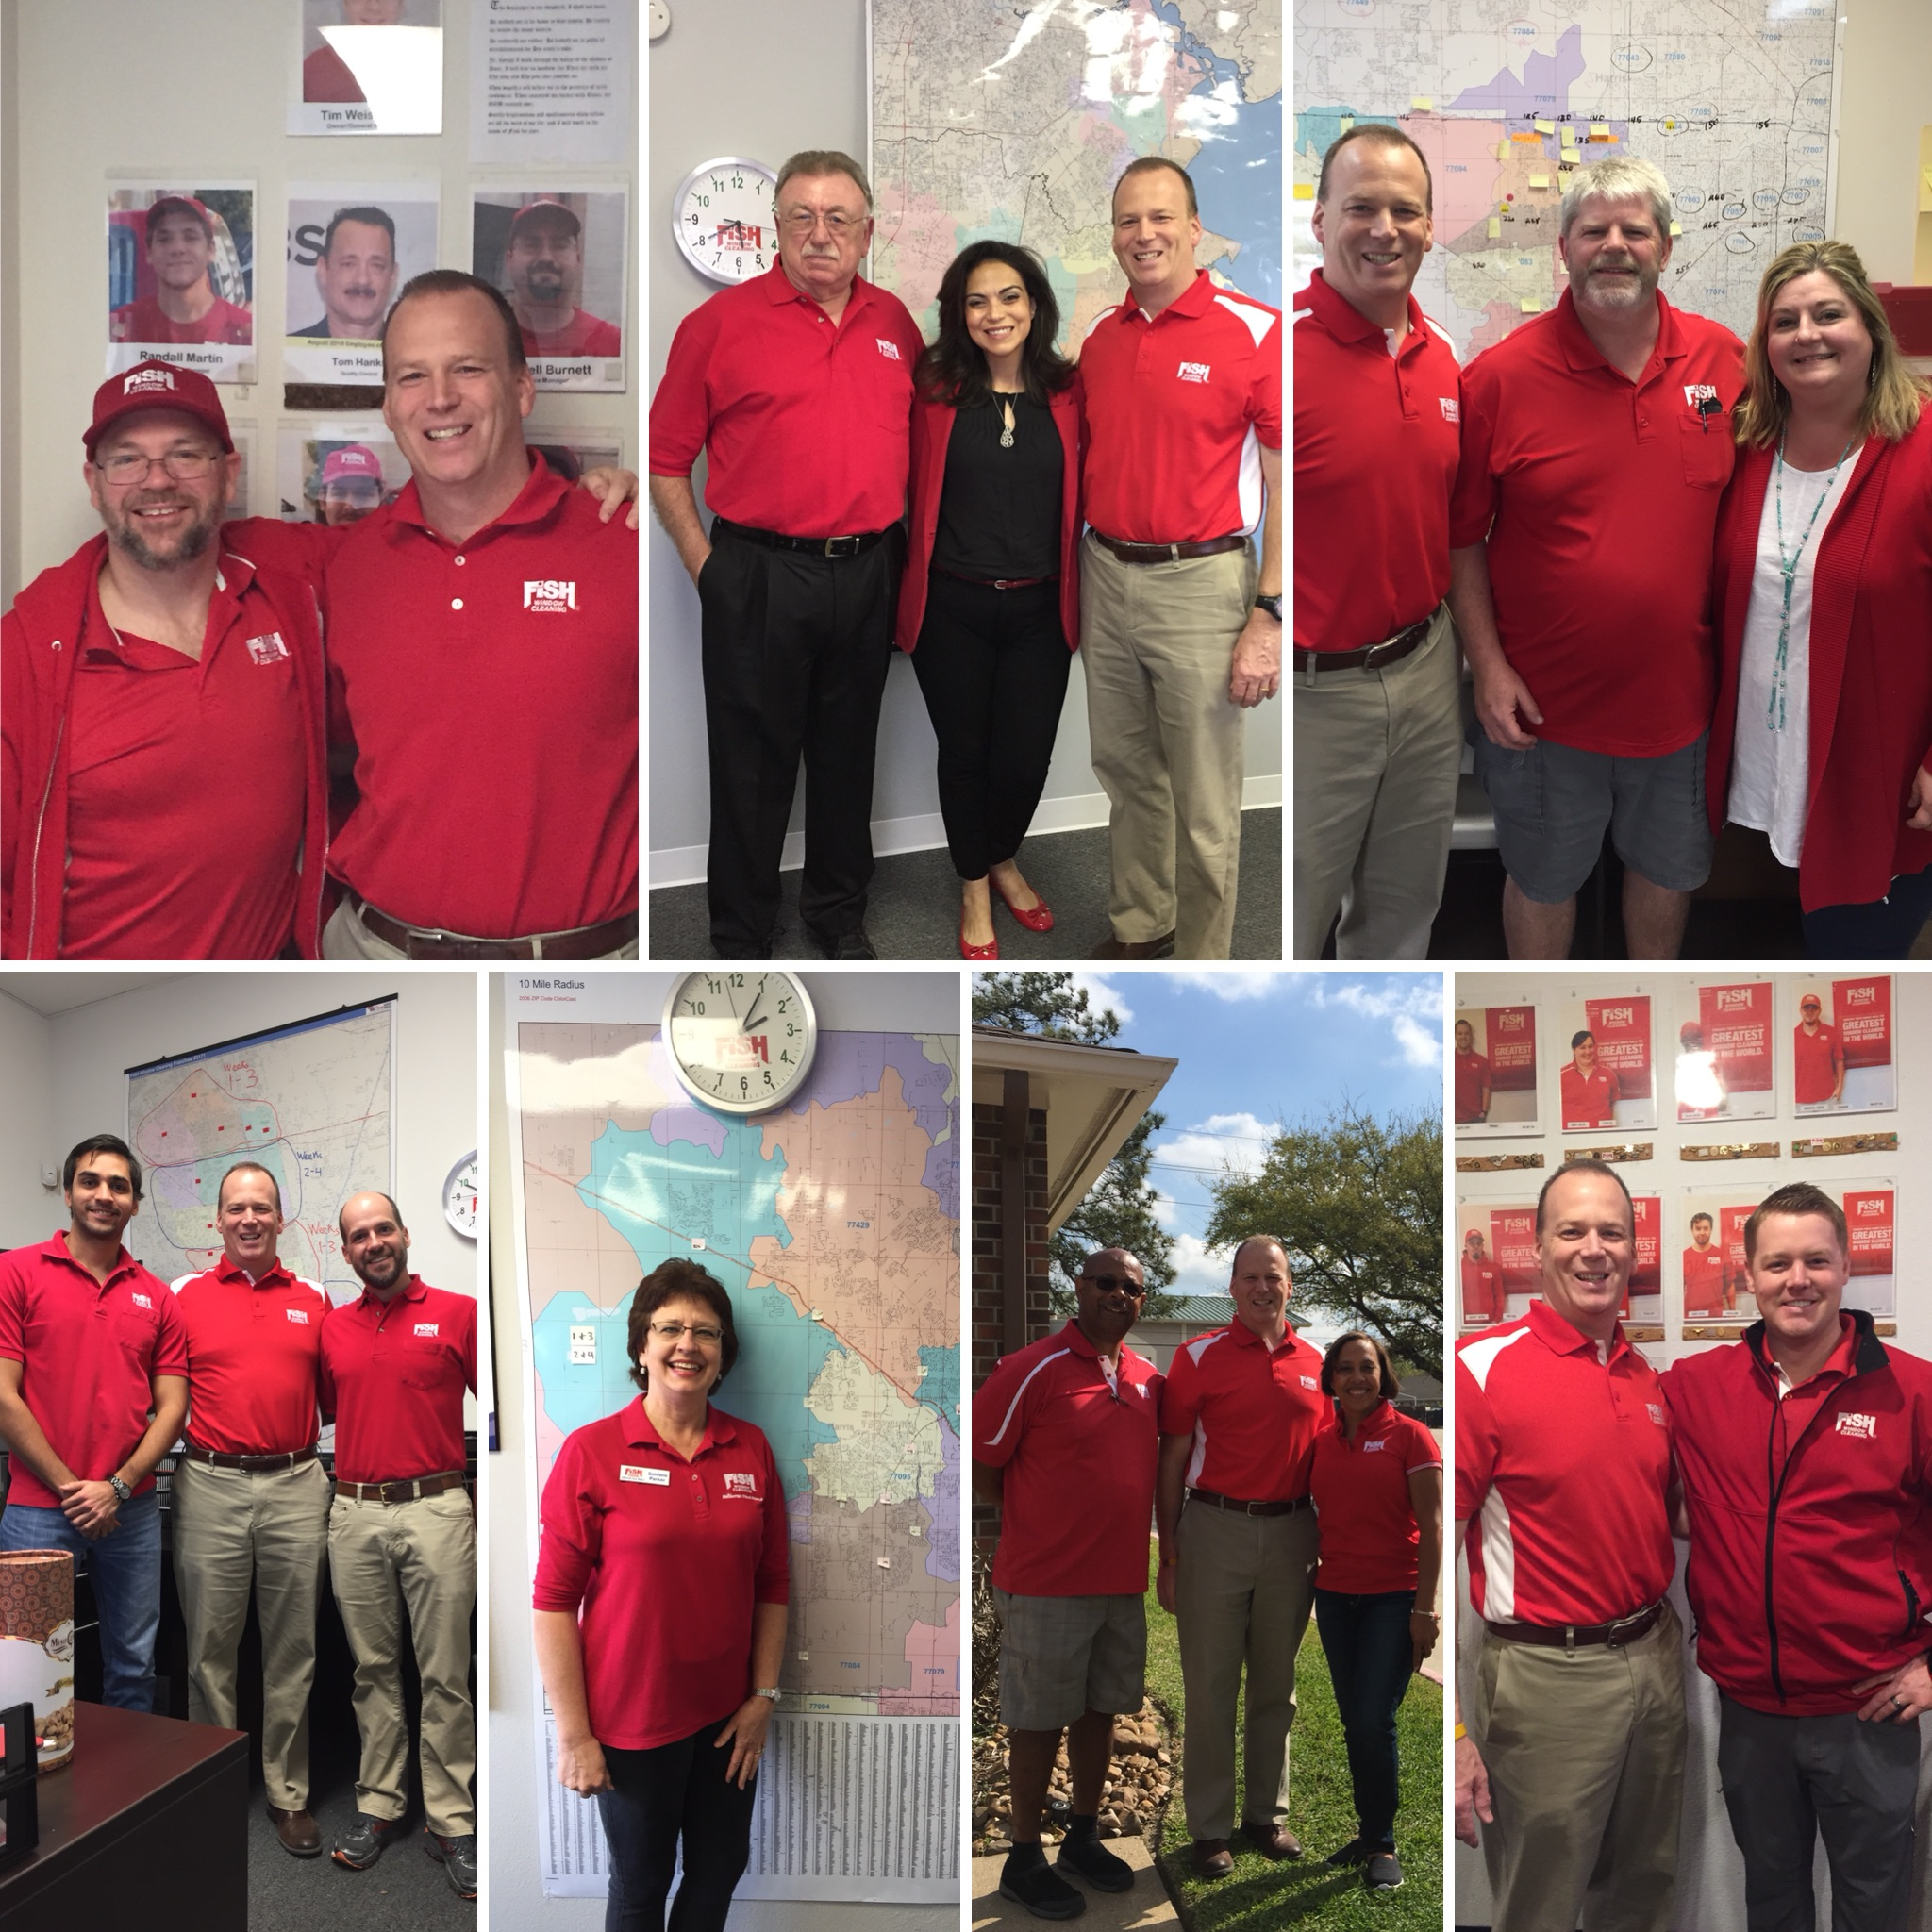 Collage of Photos with Randy Cross and Franchisees